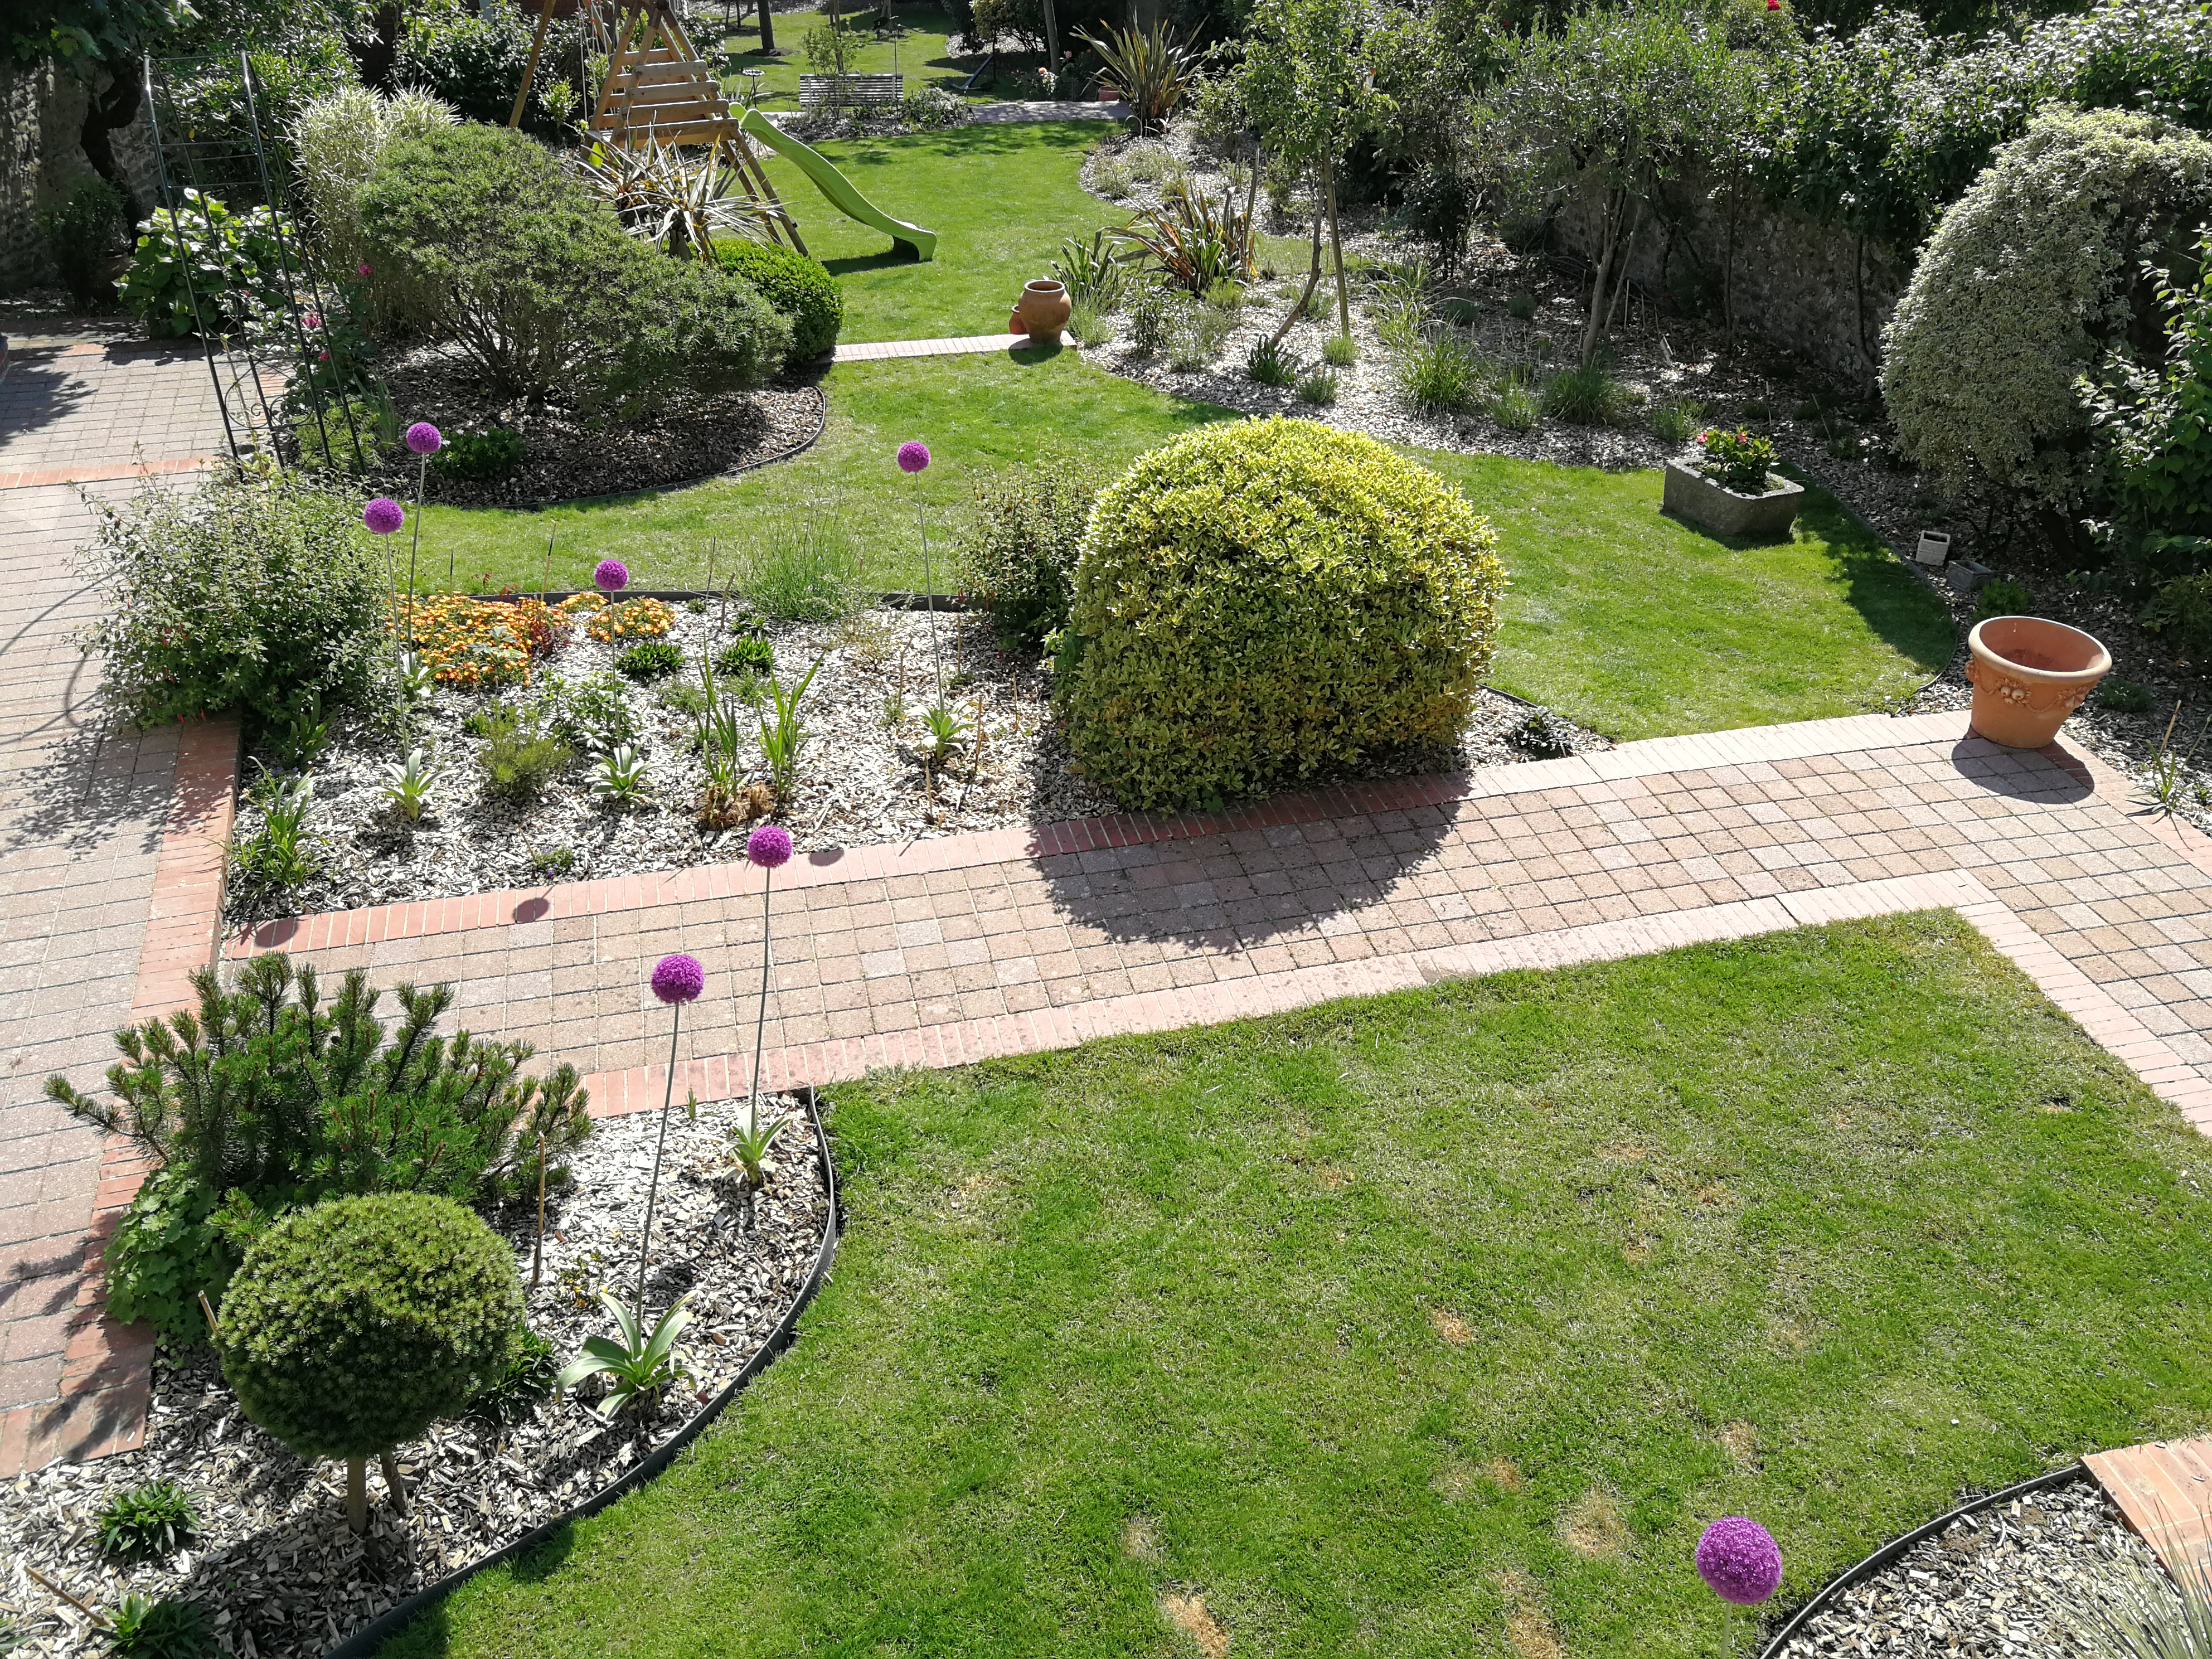 Terracity I Paysagiste I Amenagement I Jardin I Terrasse I ...